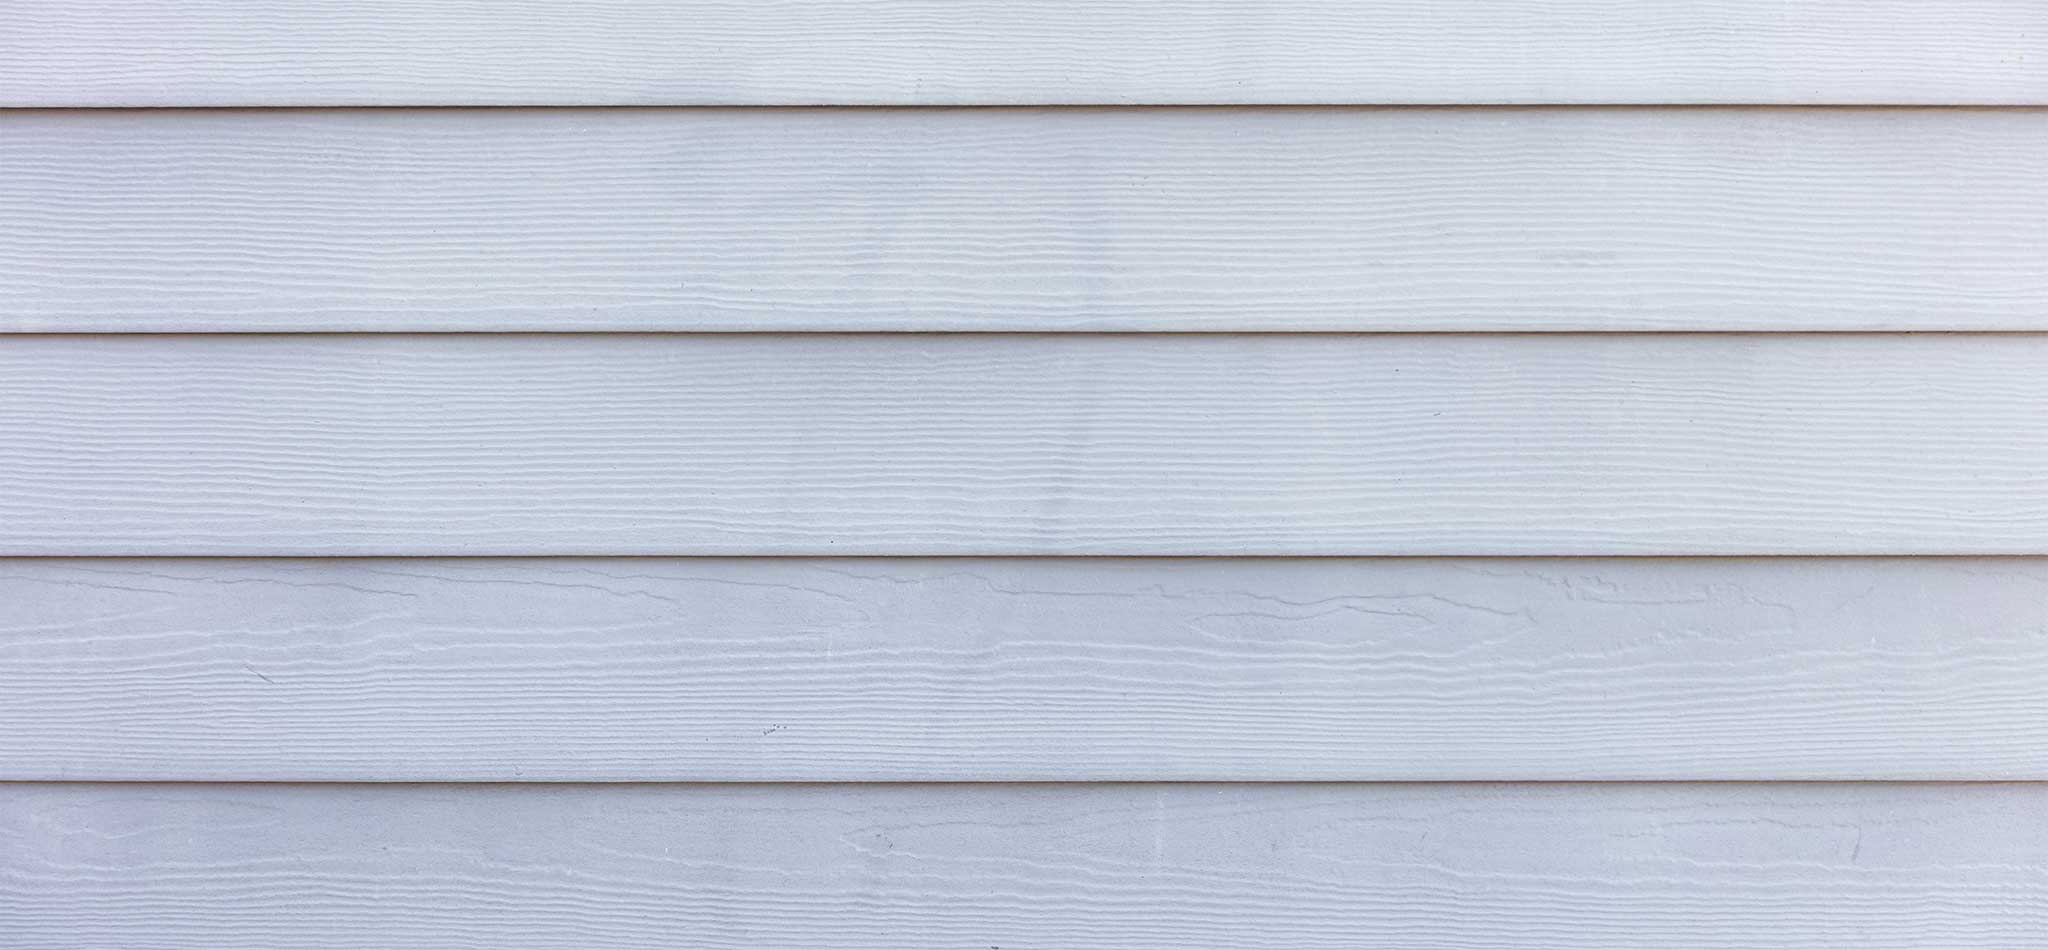 Dedicated Roofing & Exteriors - Siding Professional Roofing Calgary Roof Repair Roof Replacement Roof Inspection